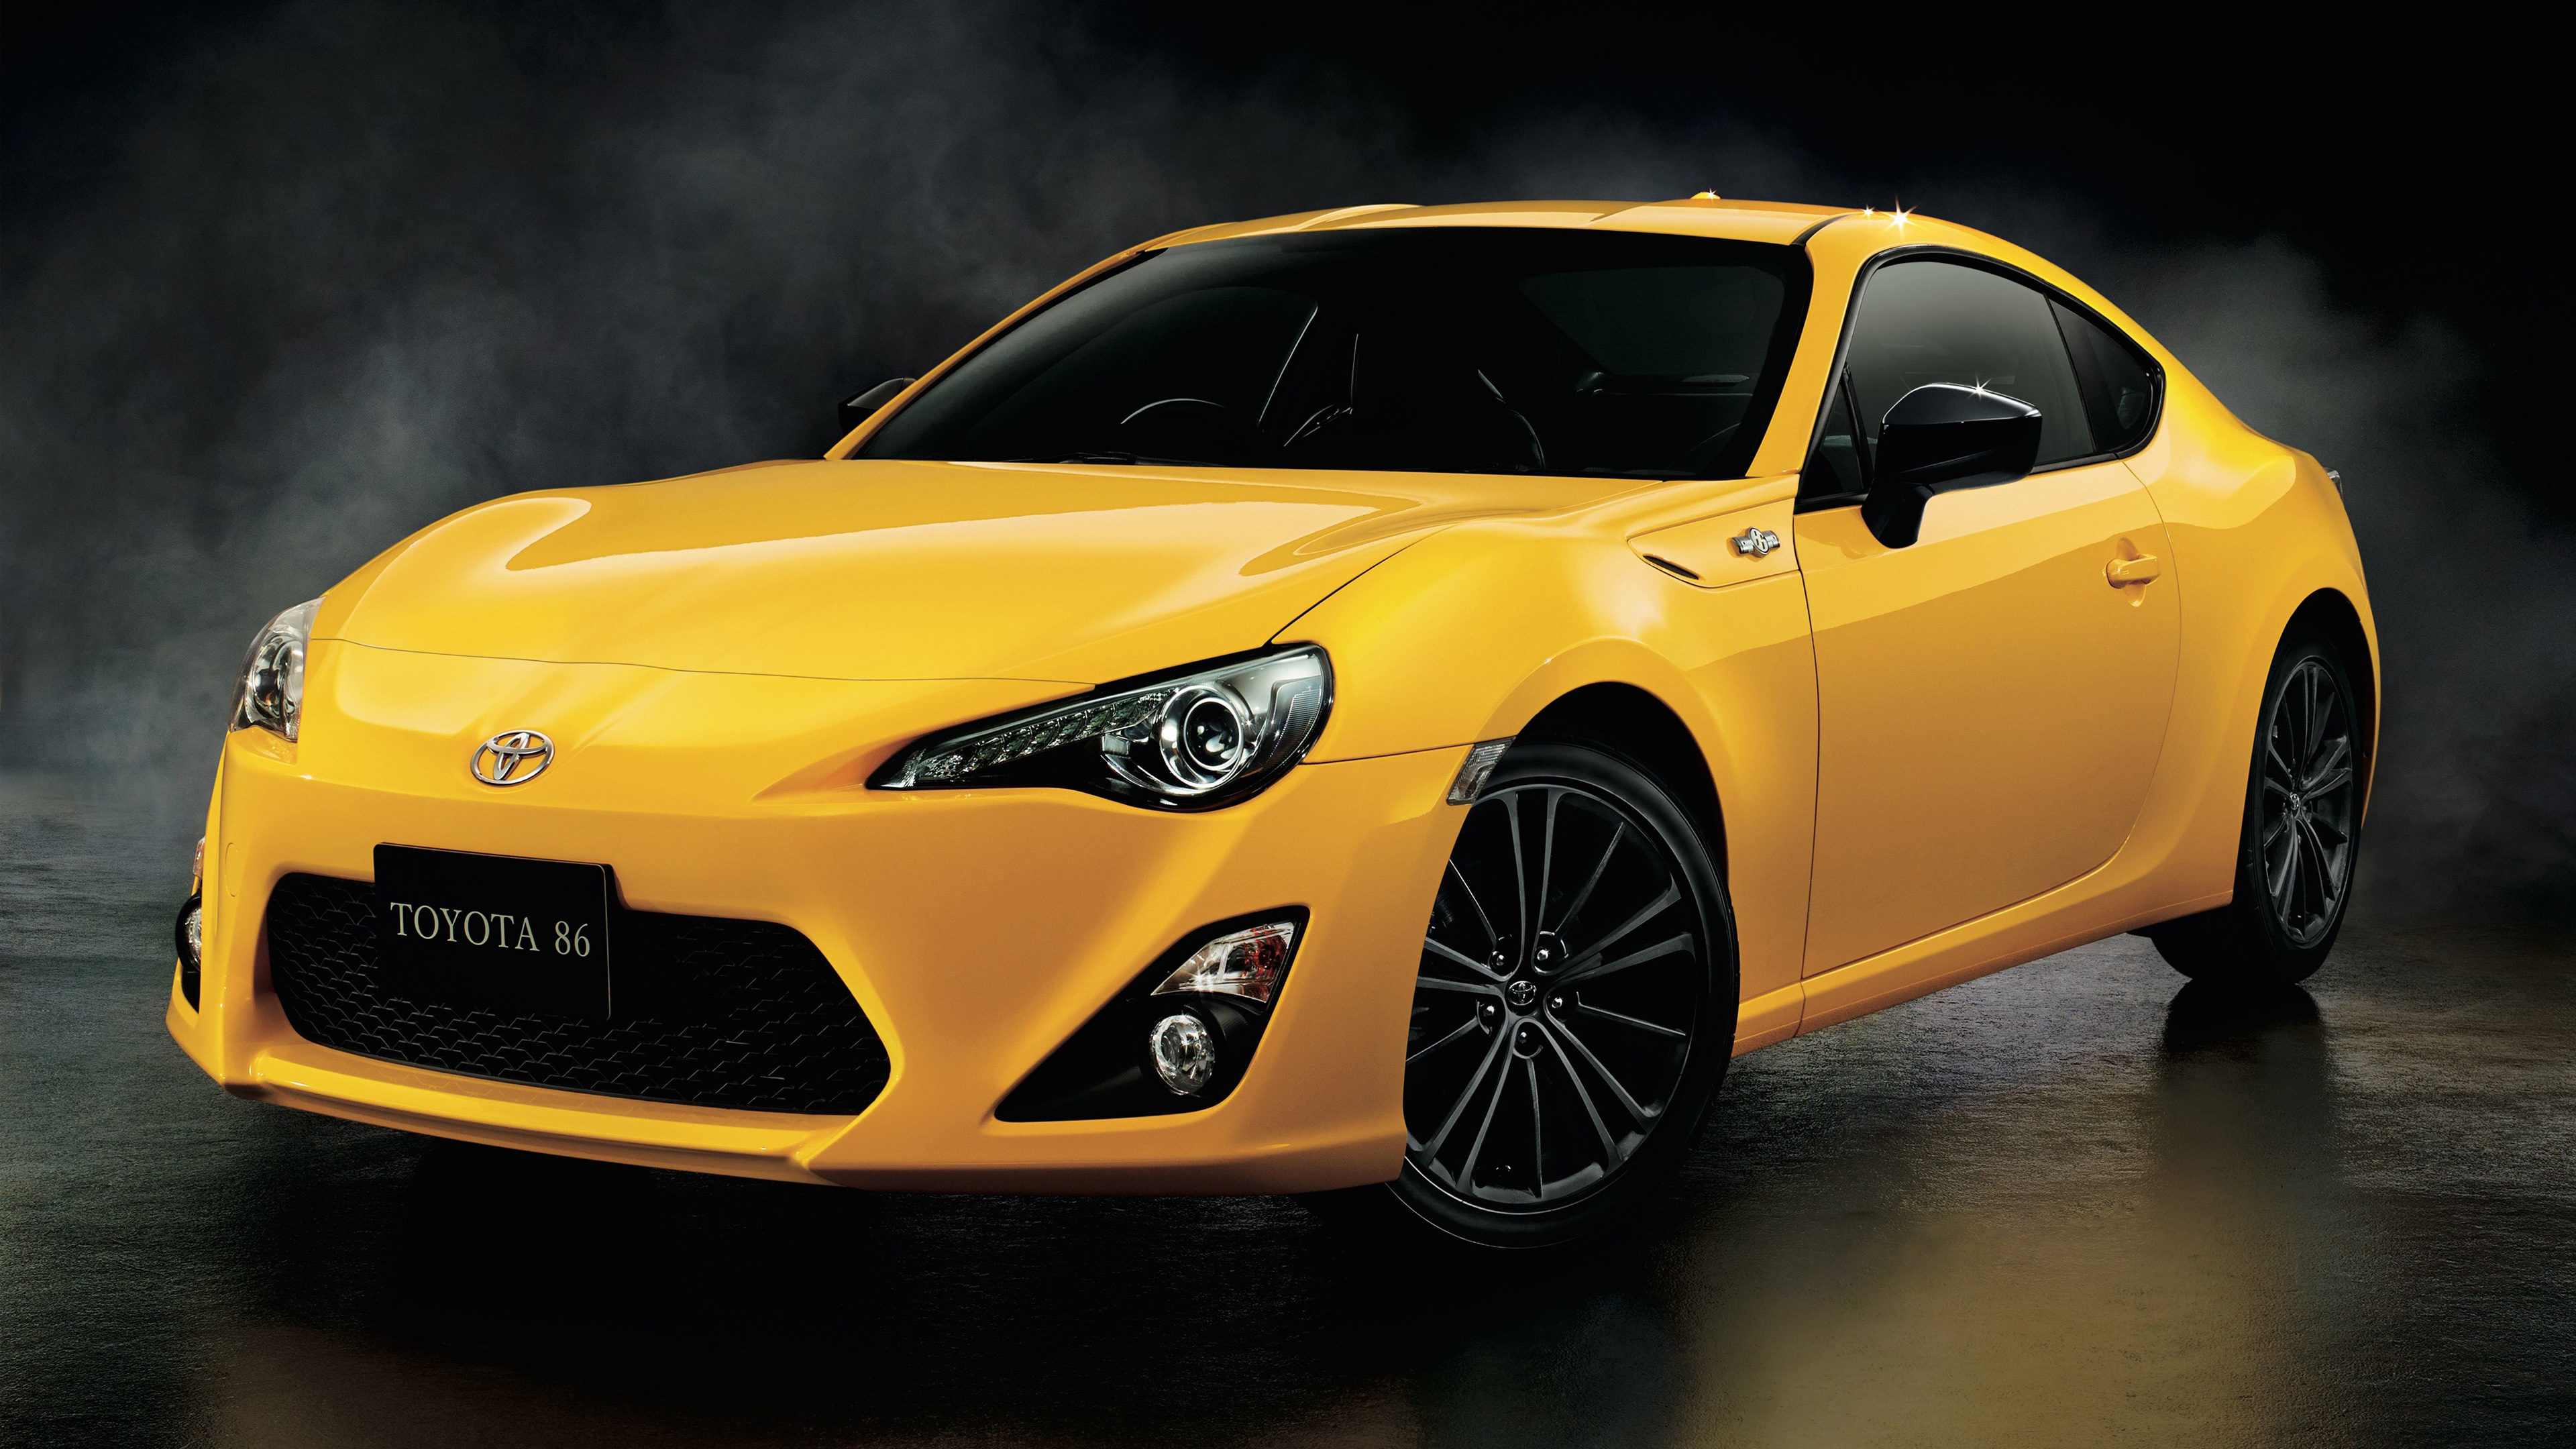 toyota gt 86 wallpaper hd car wallpapers id 6204. Black Bedroom Furniture Sets. Home Design Ideas